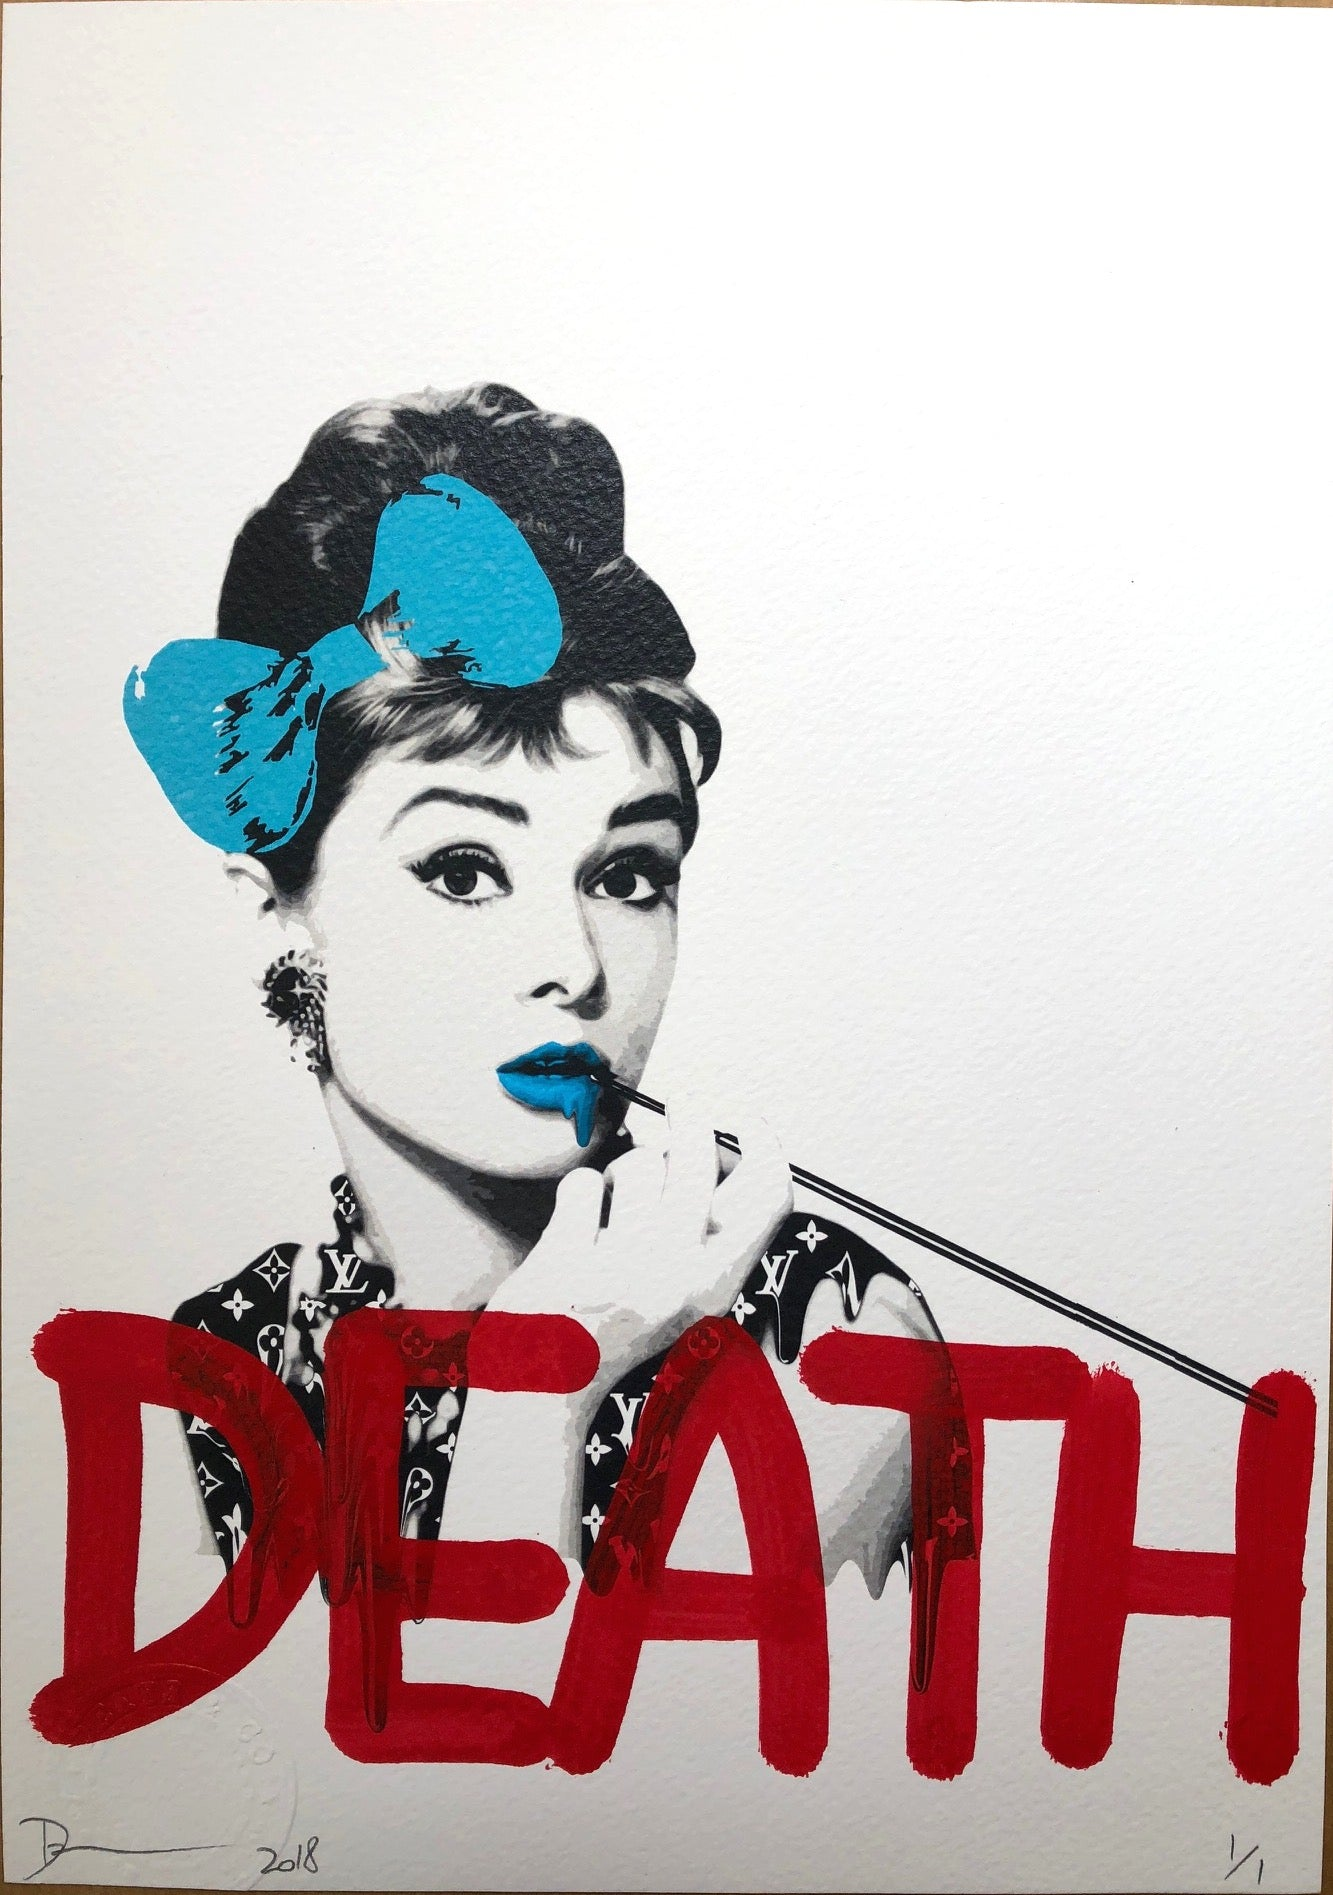 Audrey DEATH (Edition of 1)